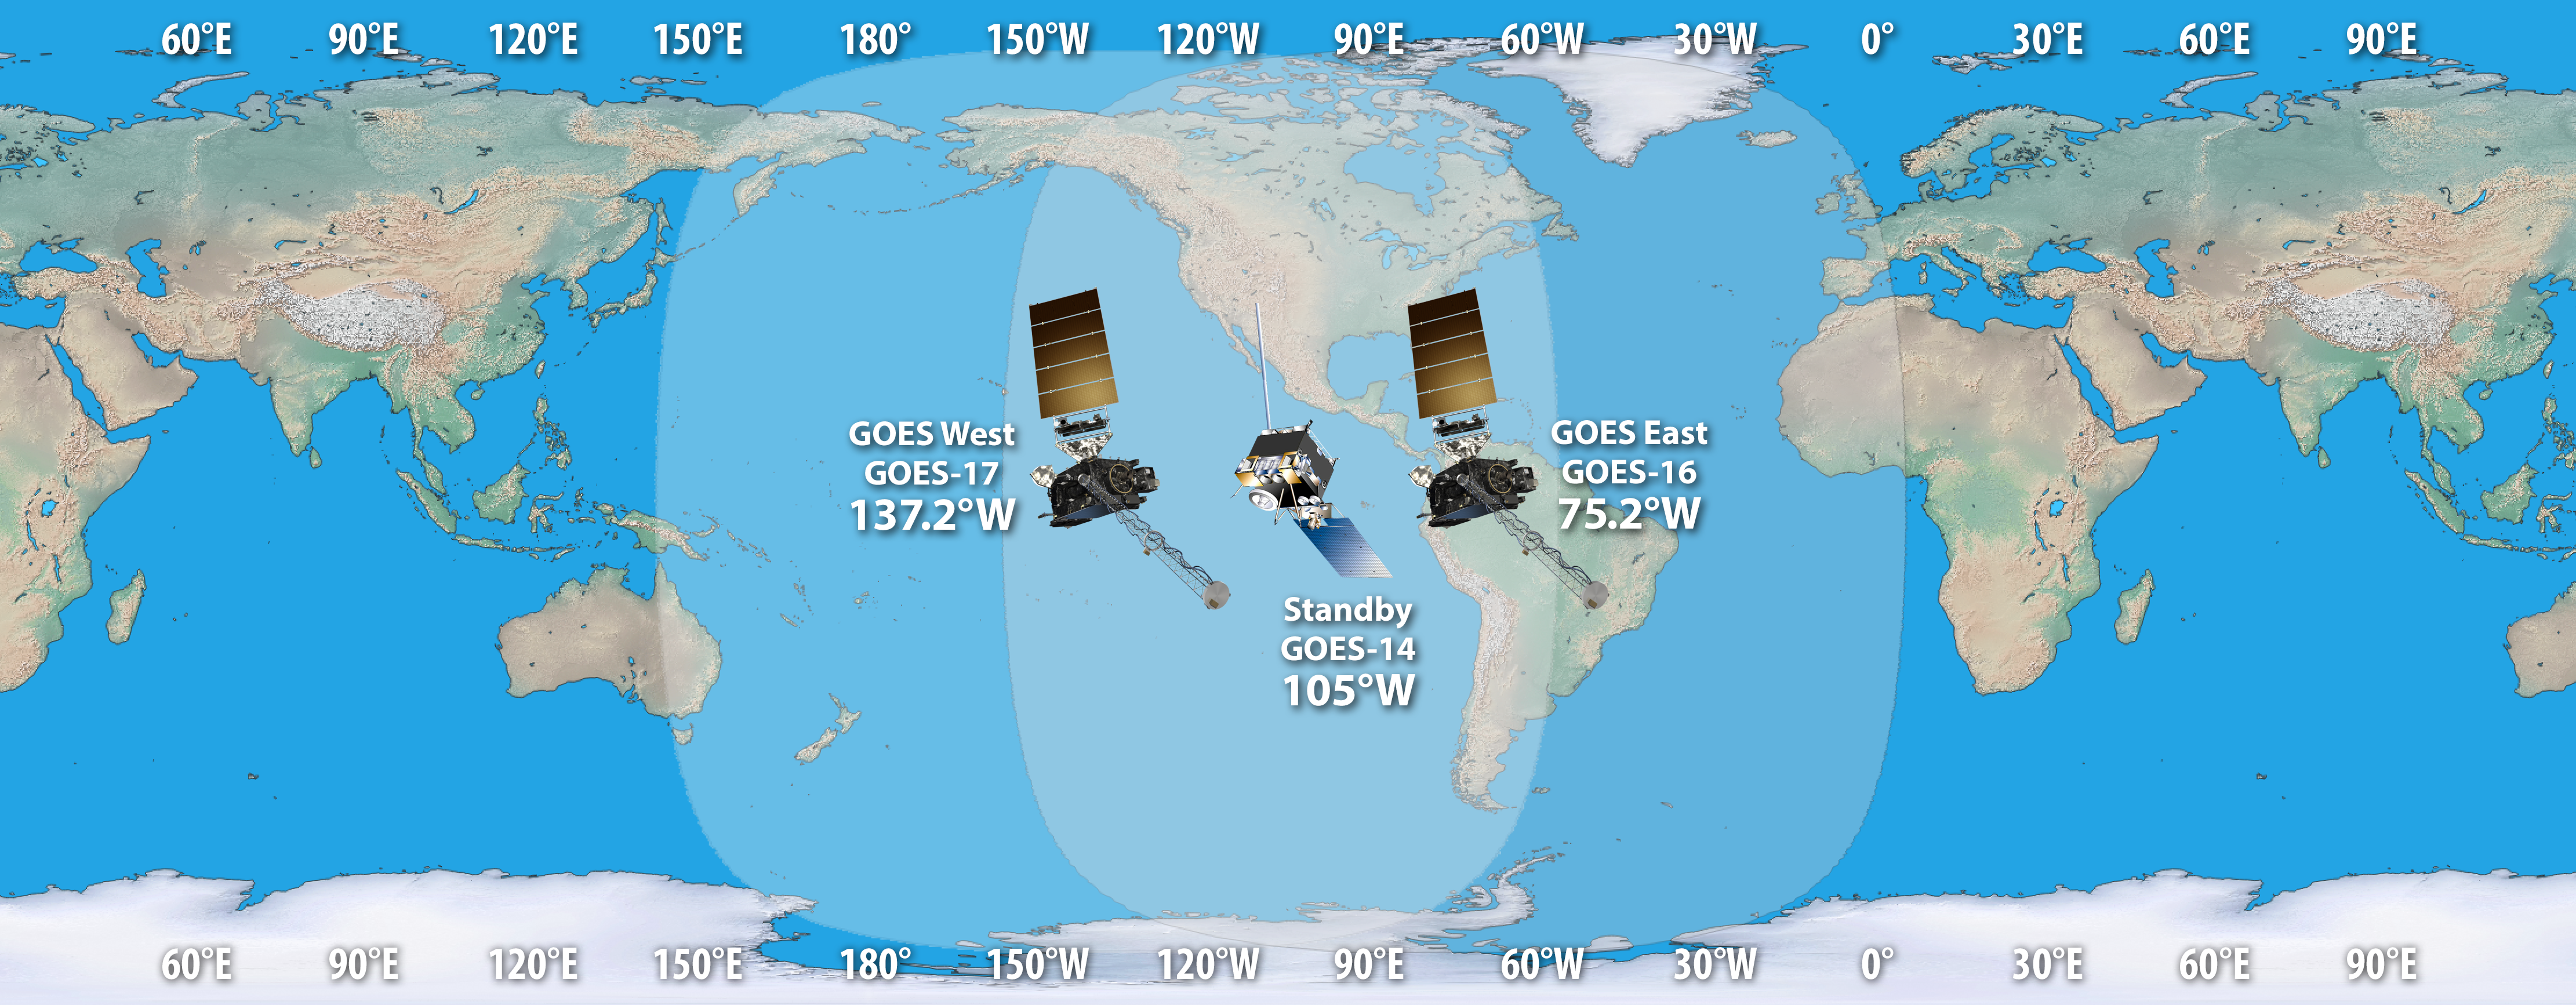 GOES constellation coverage in the GOES-R era.